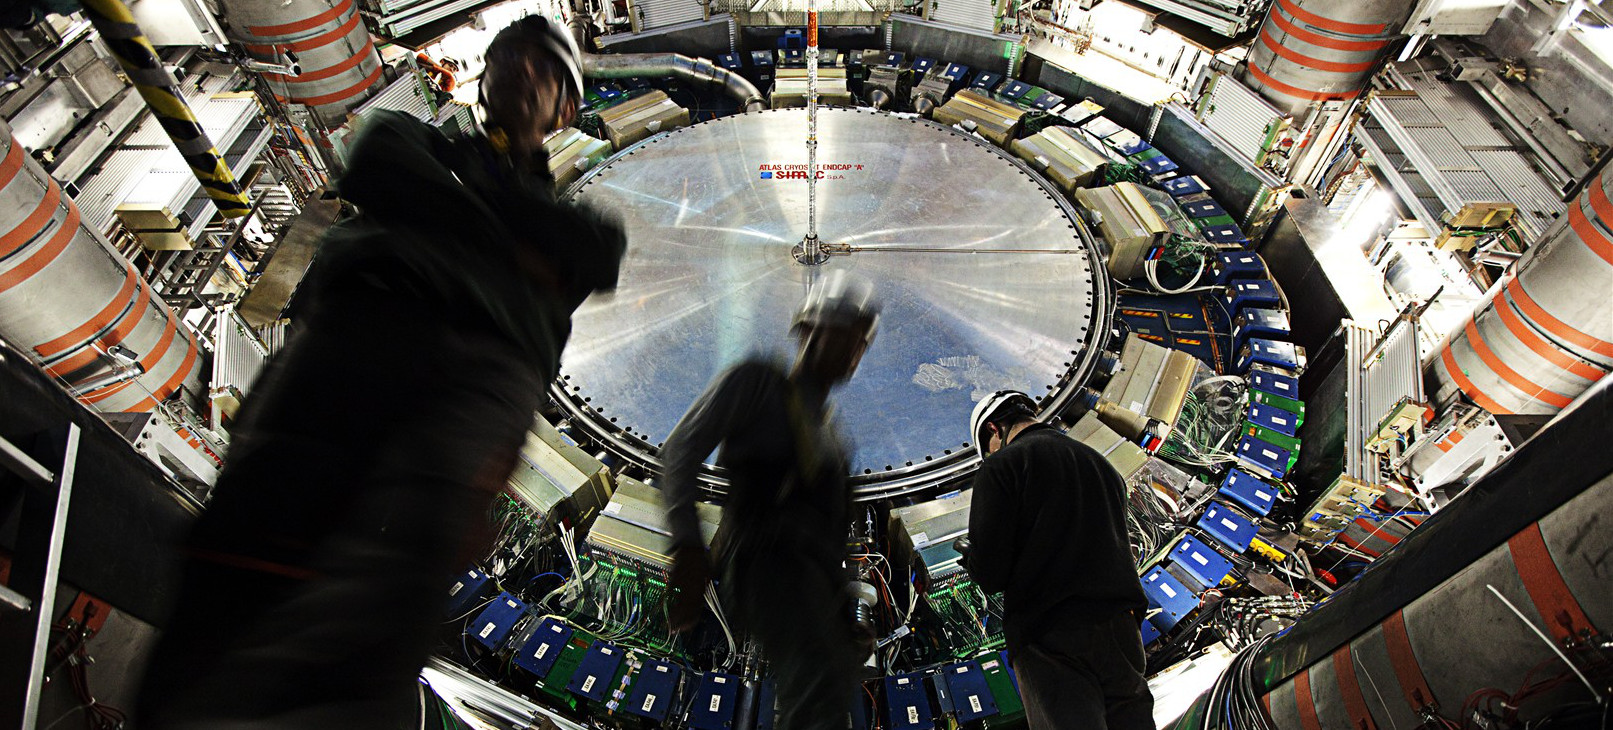 CERN Just Dropped 300Terabytesof Raw Collider Data To The Internet